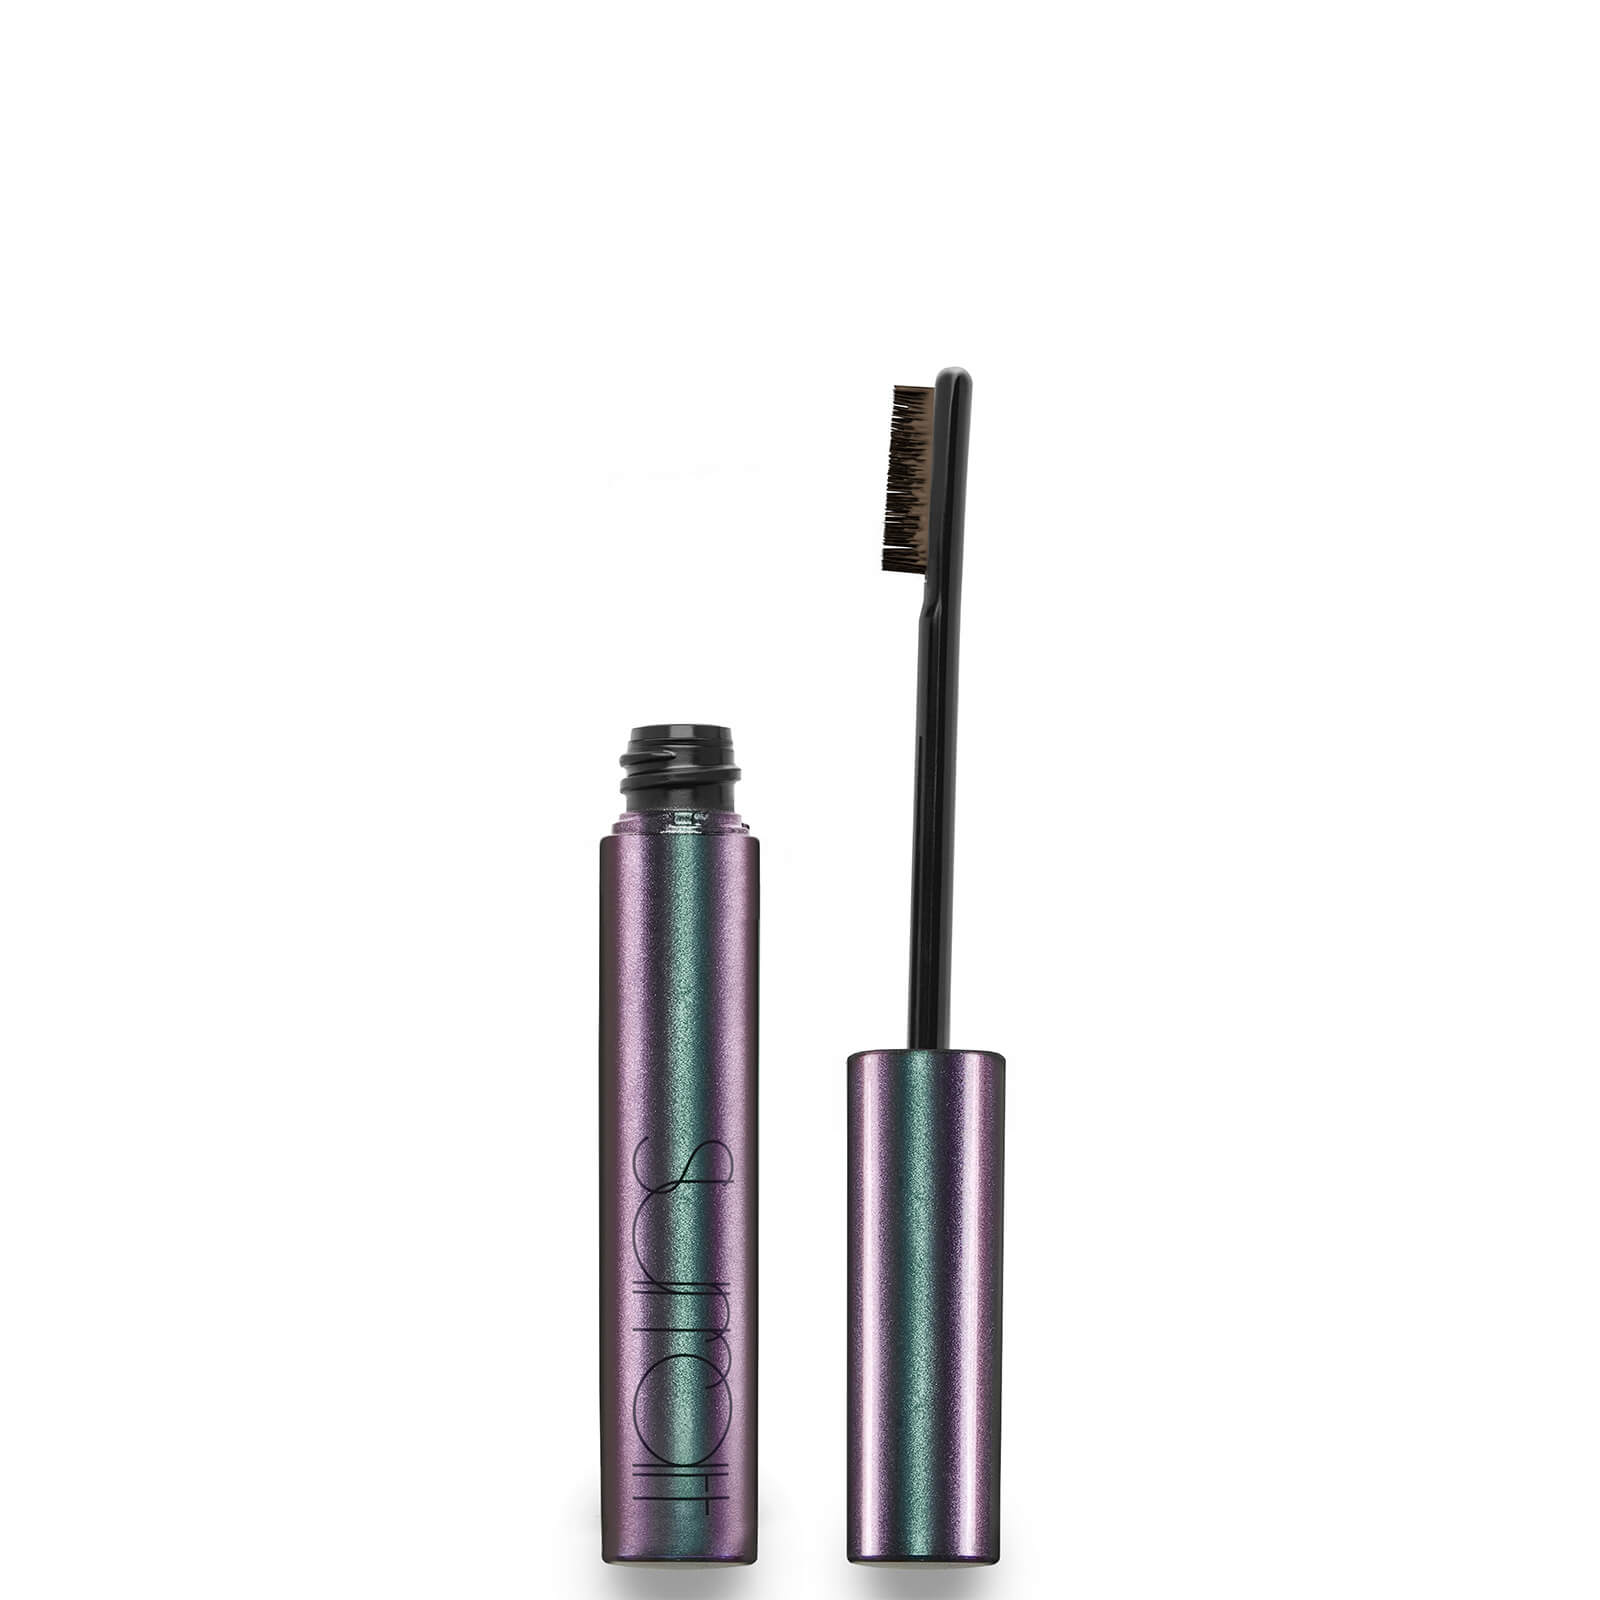 Surratt Expressioniste Brow Pomade 5ml (Various Shades) - Light Brown